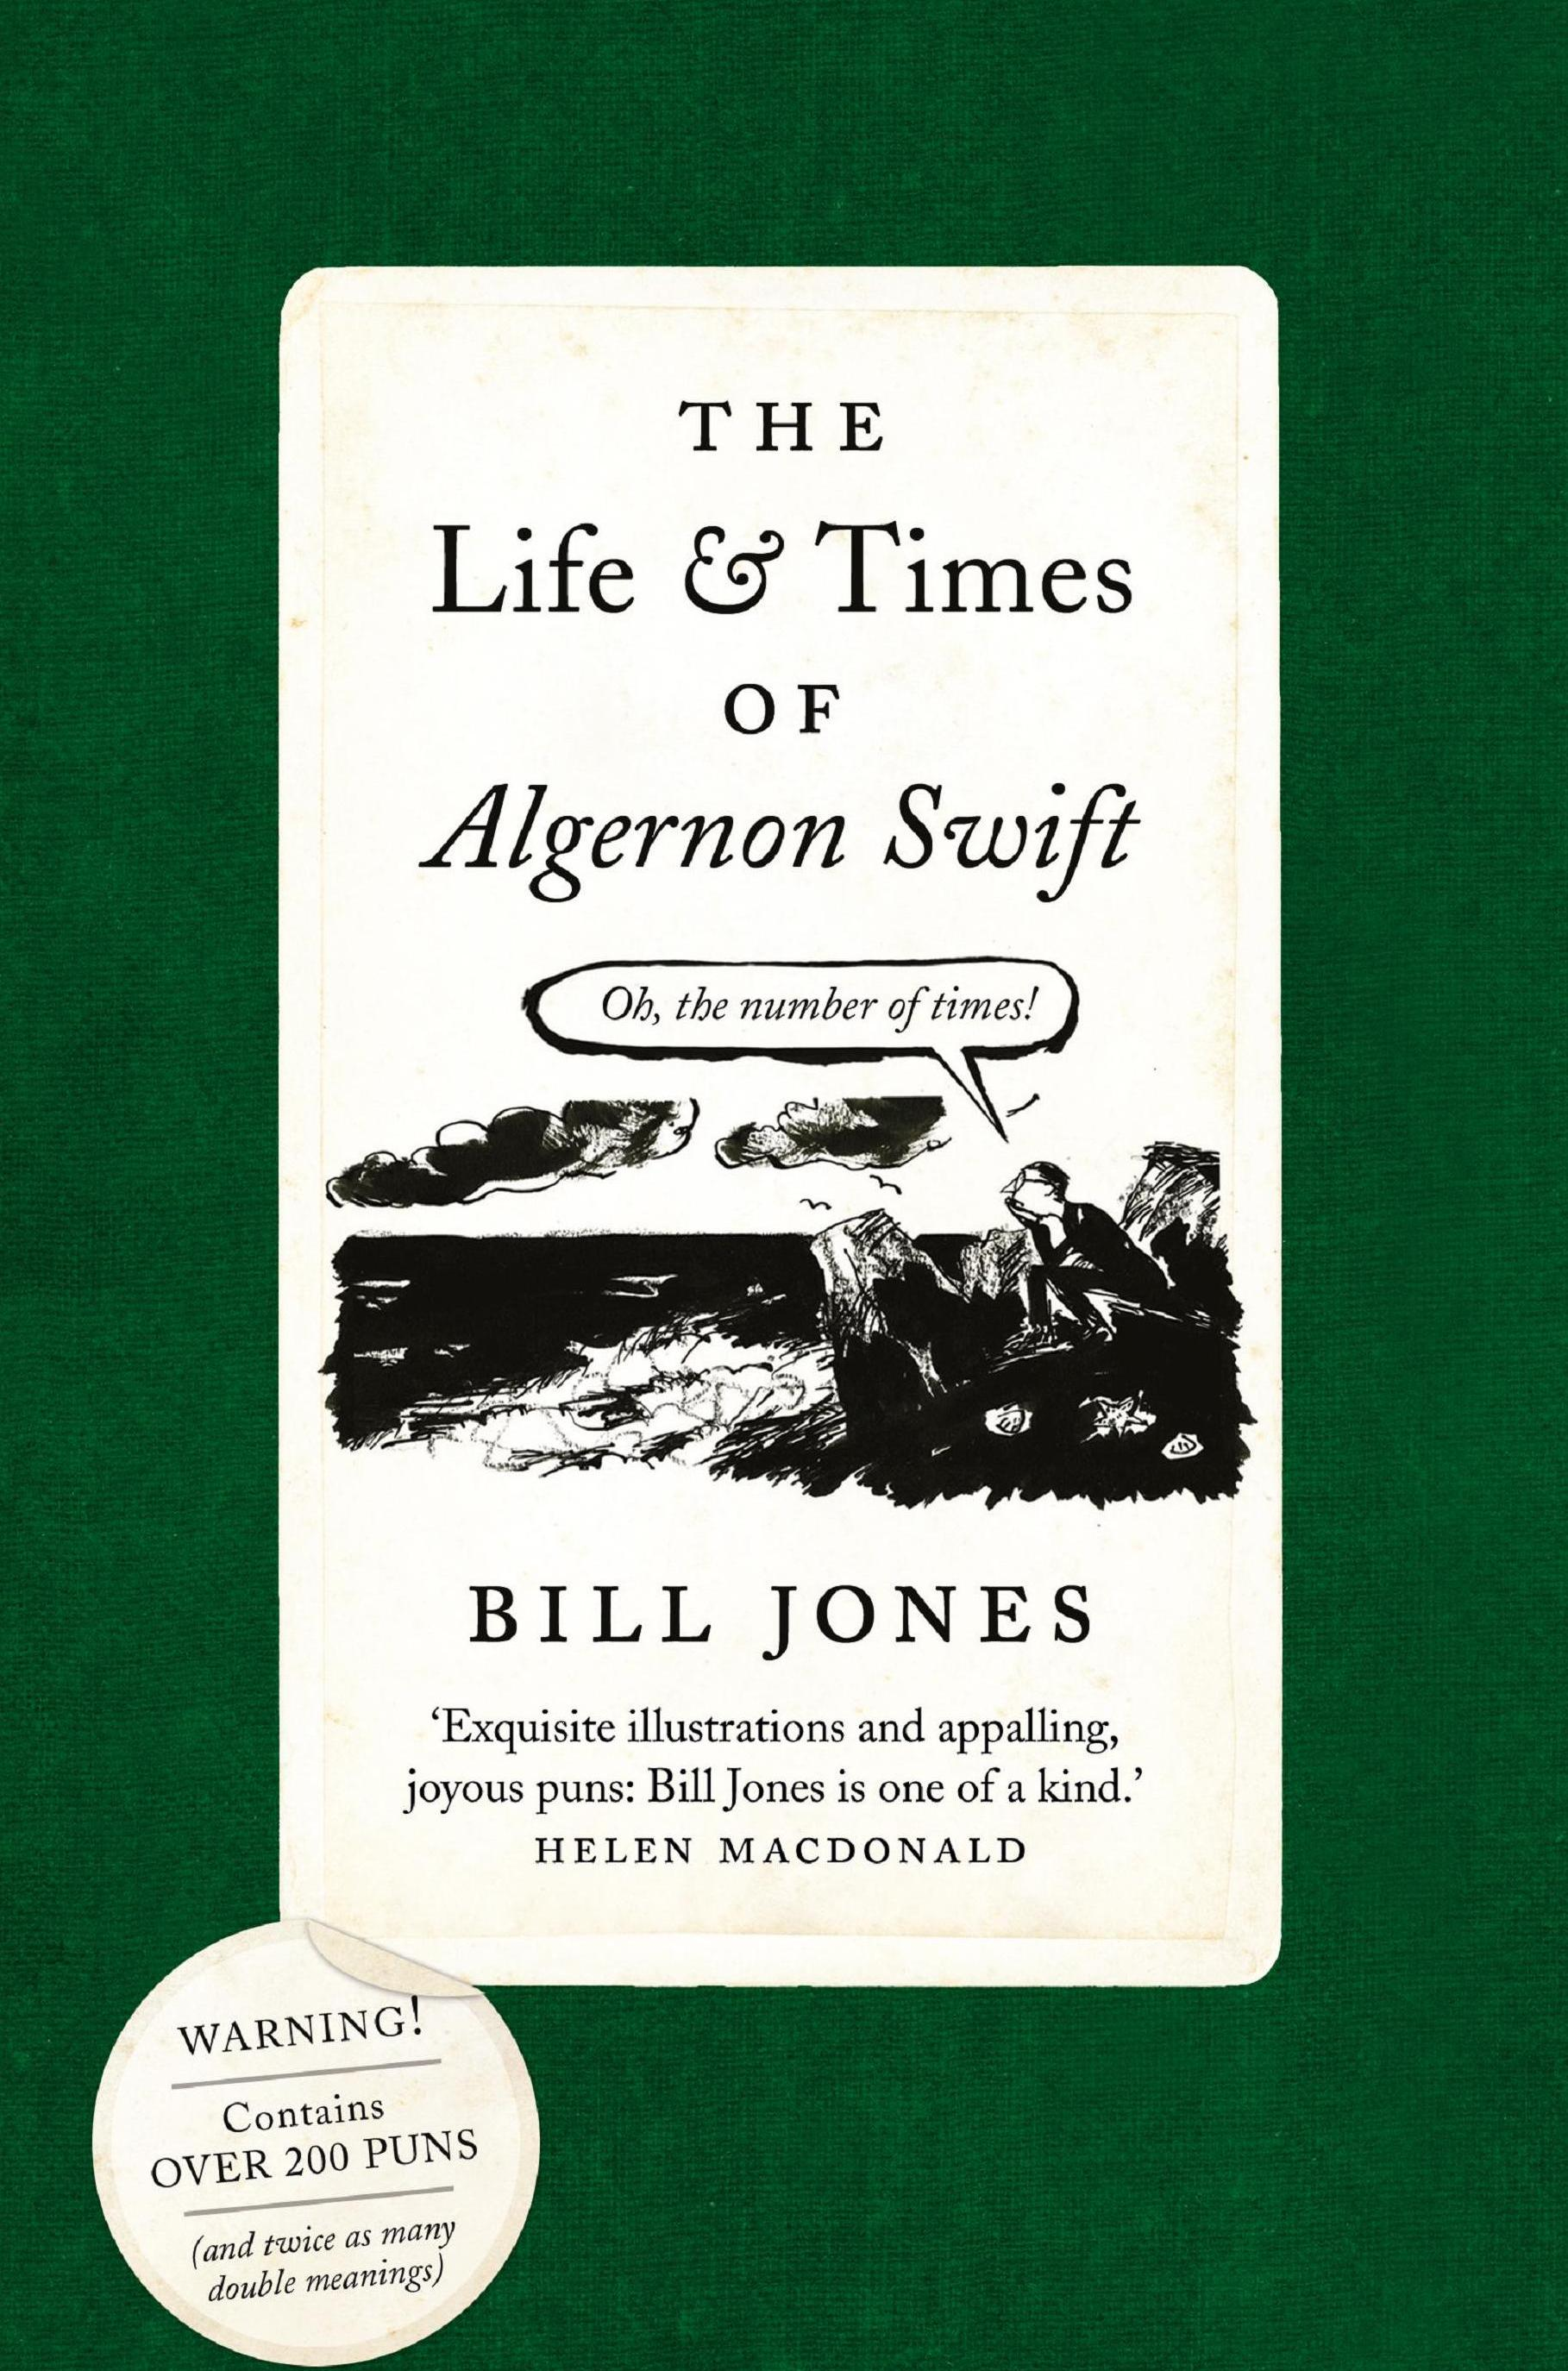 The life And Times of Algernon swift - My illustrated novel of puns, The Life and Times of Algernon Swift, was published in 2017 by Head of Zeus.Our young and earnest hero, Algernon Swift, returns from his travels abroad and must once more face the trials of life, love and the English language.Back at home, Algernon tries to cope with the exorbitant passion of the exquisite Mavis (a woman with X on her mind) and his elderly uncle, Reverend Hawker, and his exasperating inability to mean one thing at a time.Well-meaning in a world of double meanings, can Algernon avoid becoming another of Mavis's Xs or, at least, plunging into an existential crisis of his own?Available from good bookshops and online retailers.